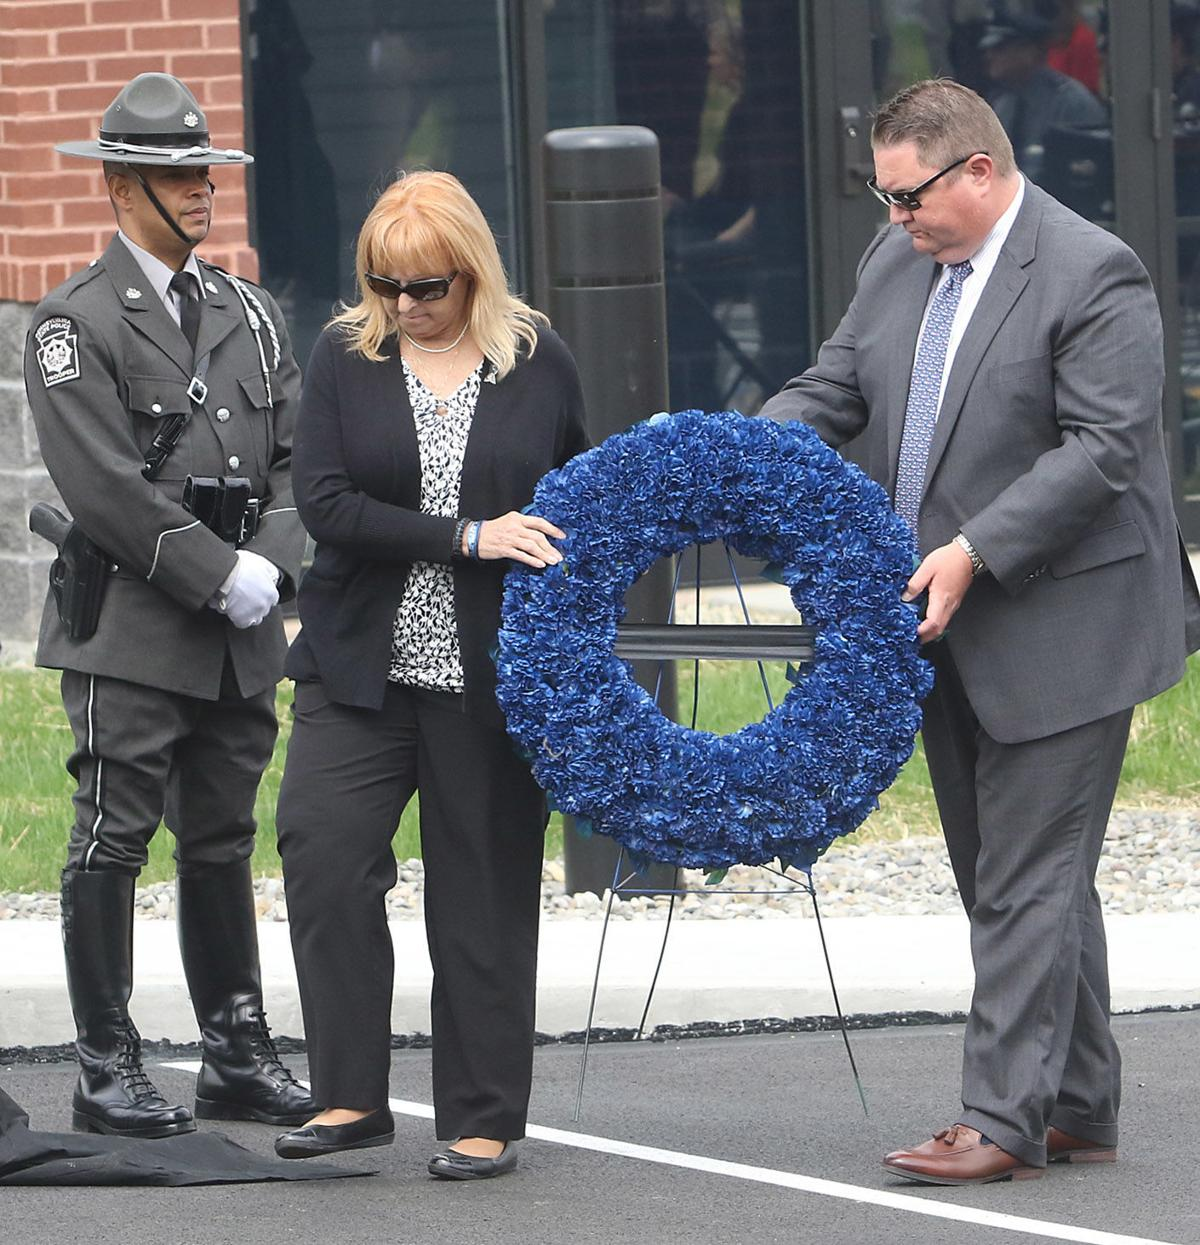 Wreath placed at memorial